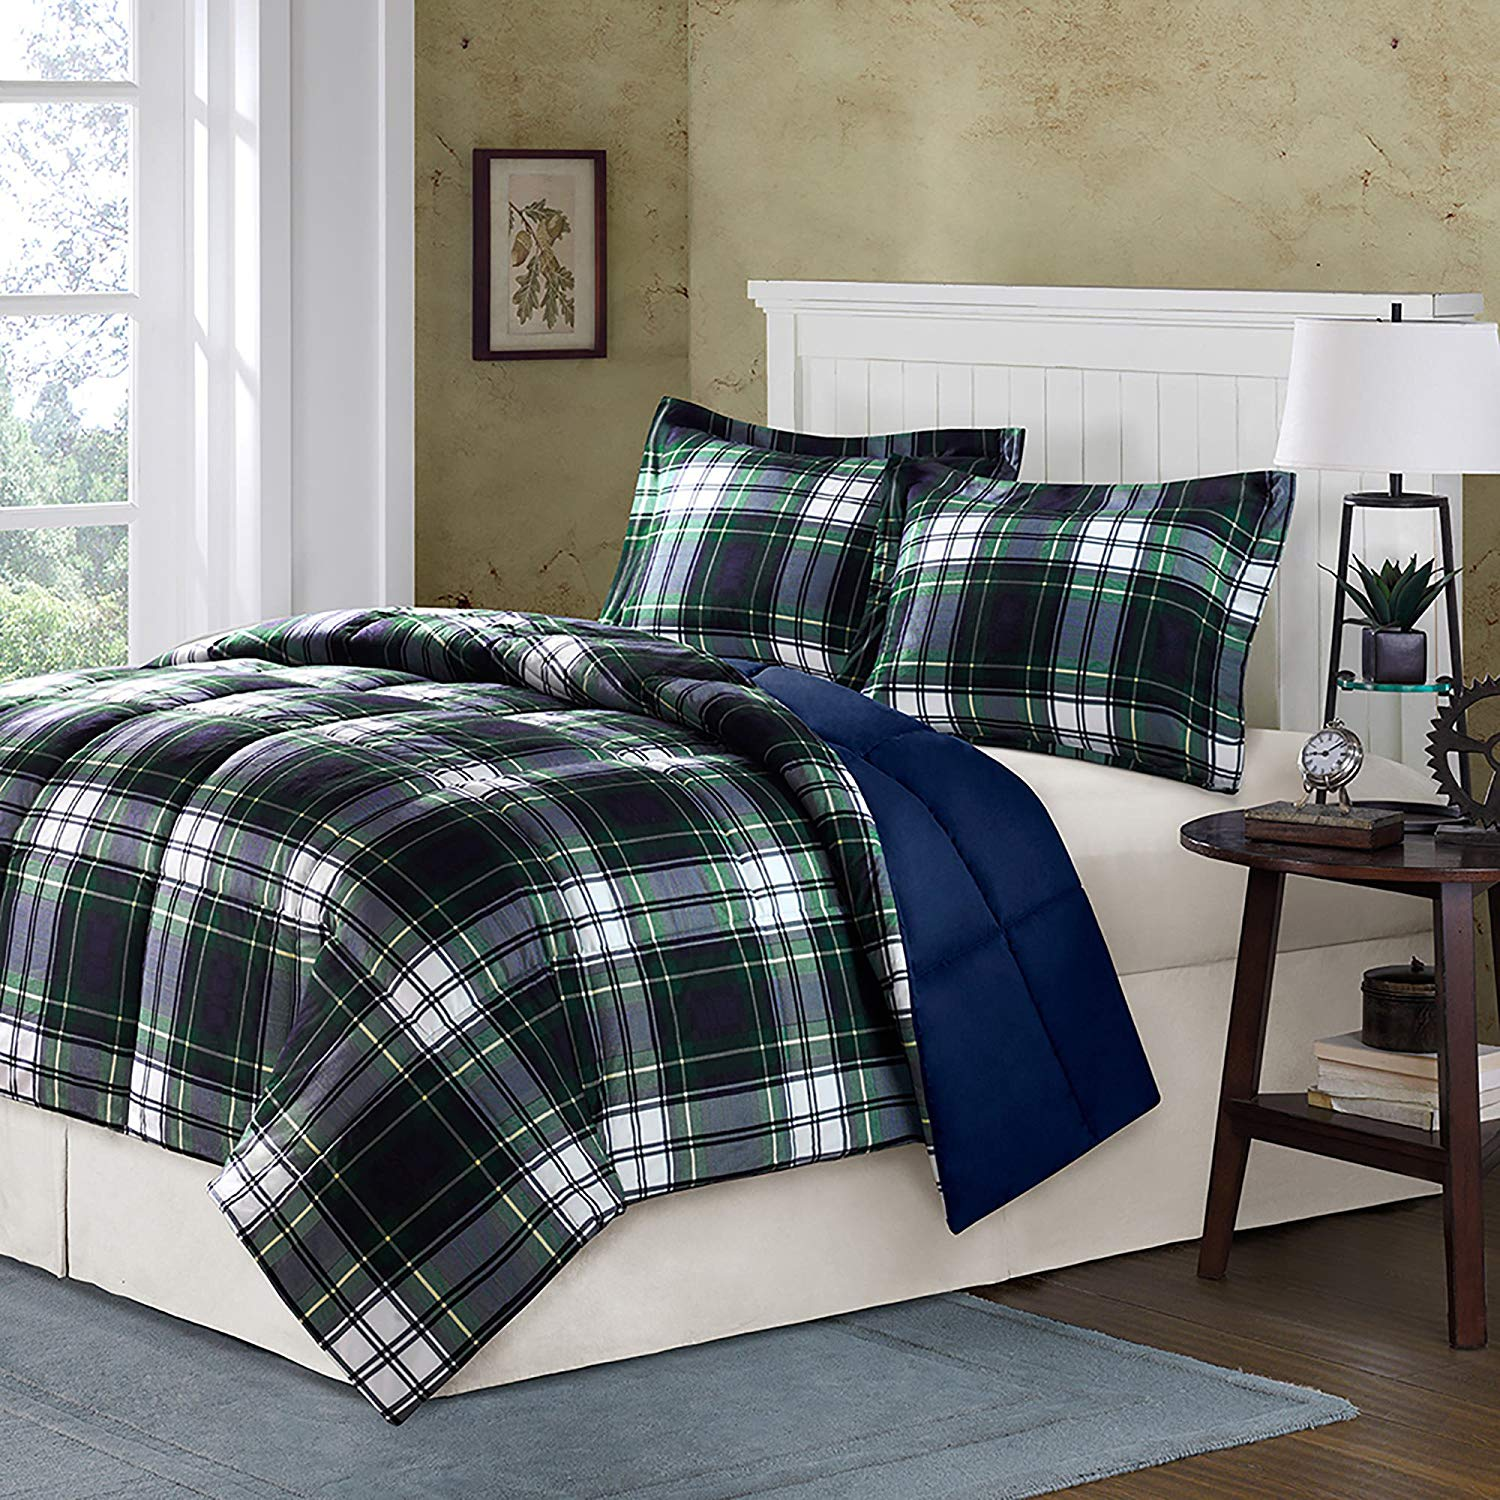 CA 3 Piece White Green Navy Blue Buffalo Checked Comforter Full Queen Set, Classic Plaid Madras Bedding Extra Warmth Lightweight Checkered Yellow Down Alternative, Reversible Solid Microfiber